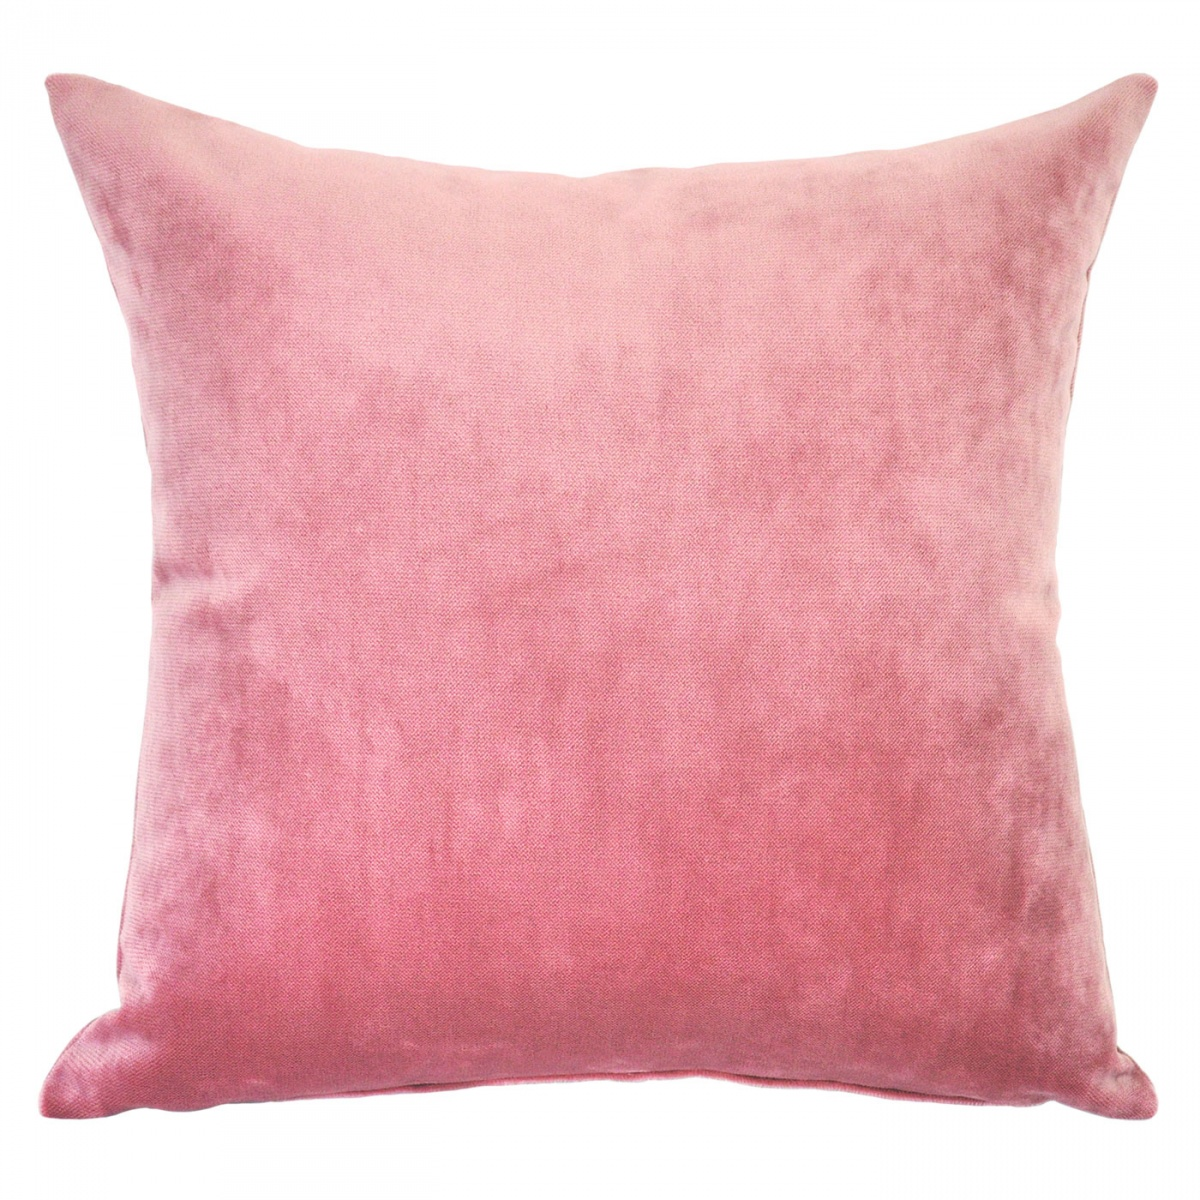 Mystere Blush Velvet Cushion - 40x40cm